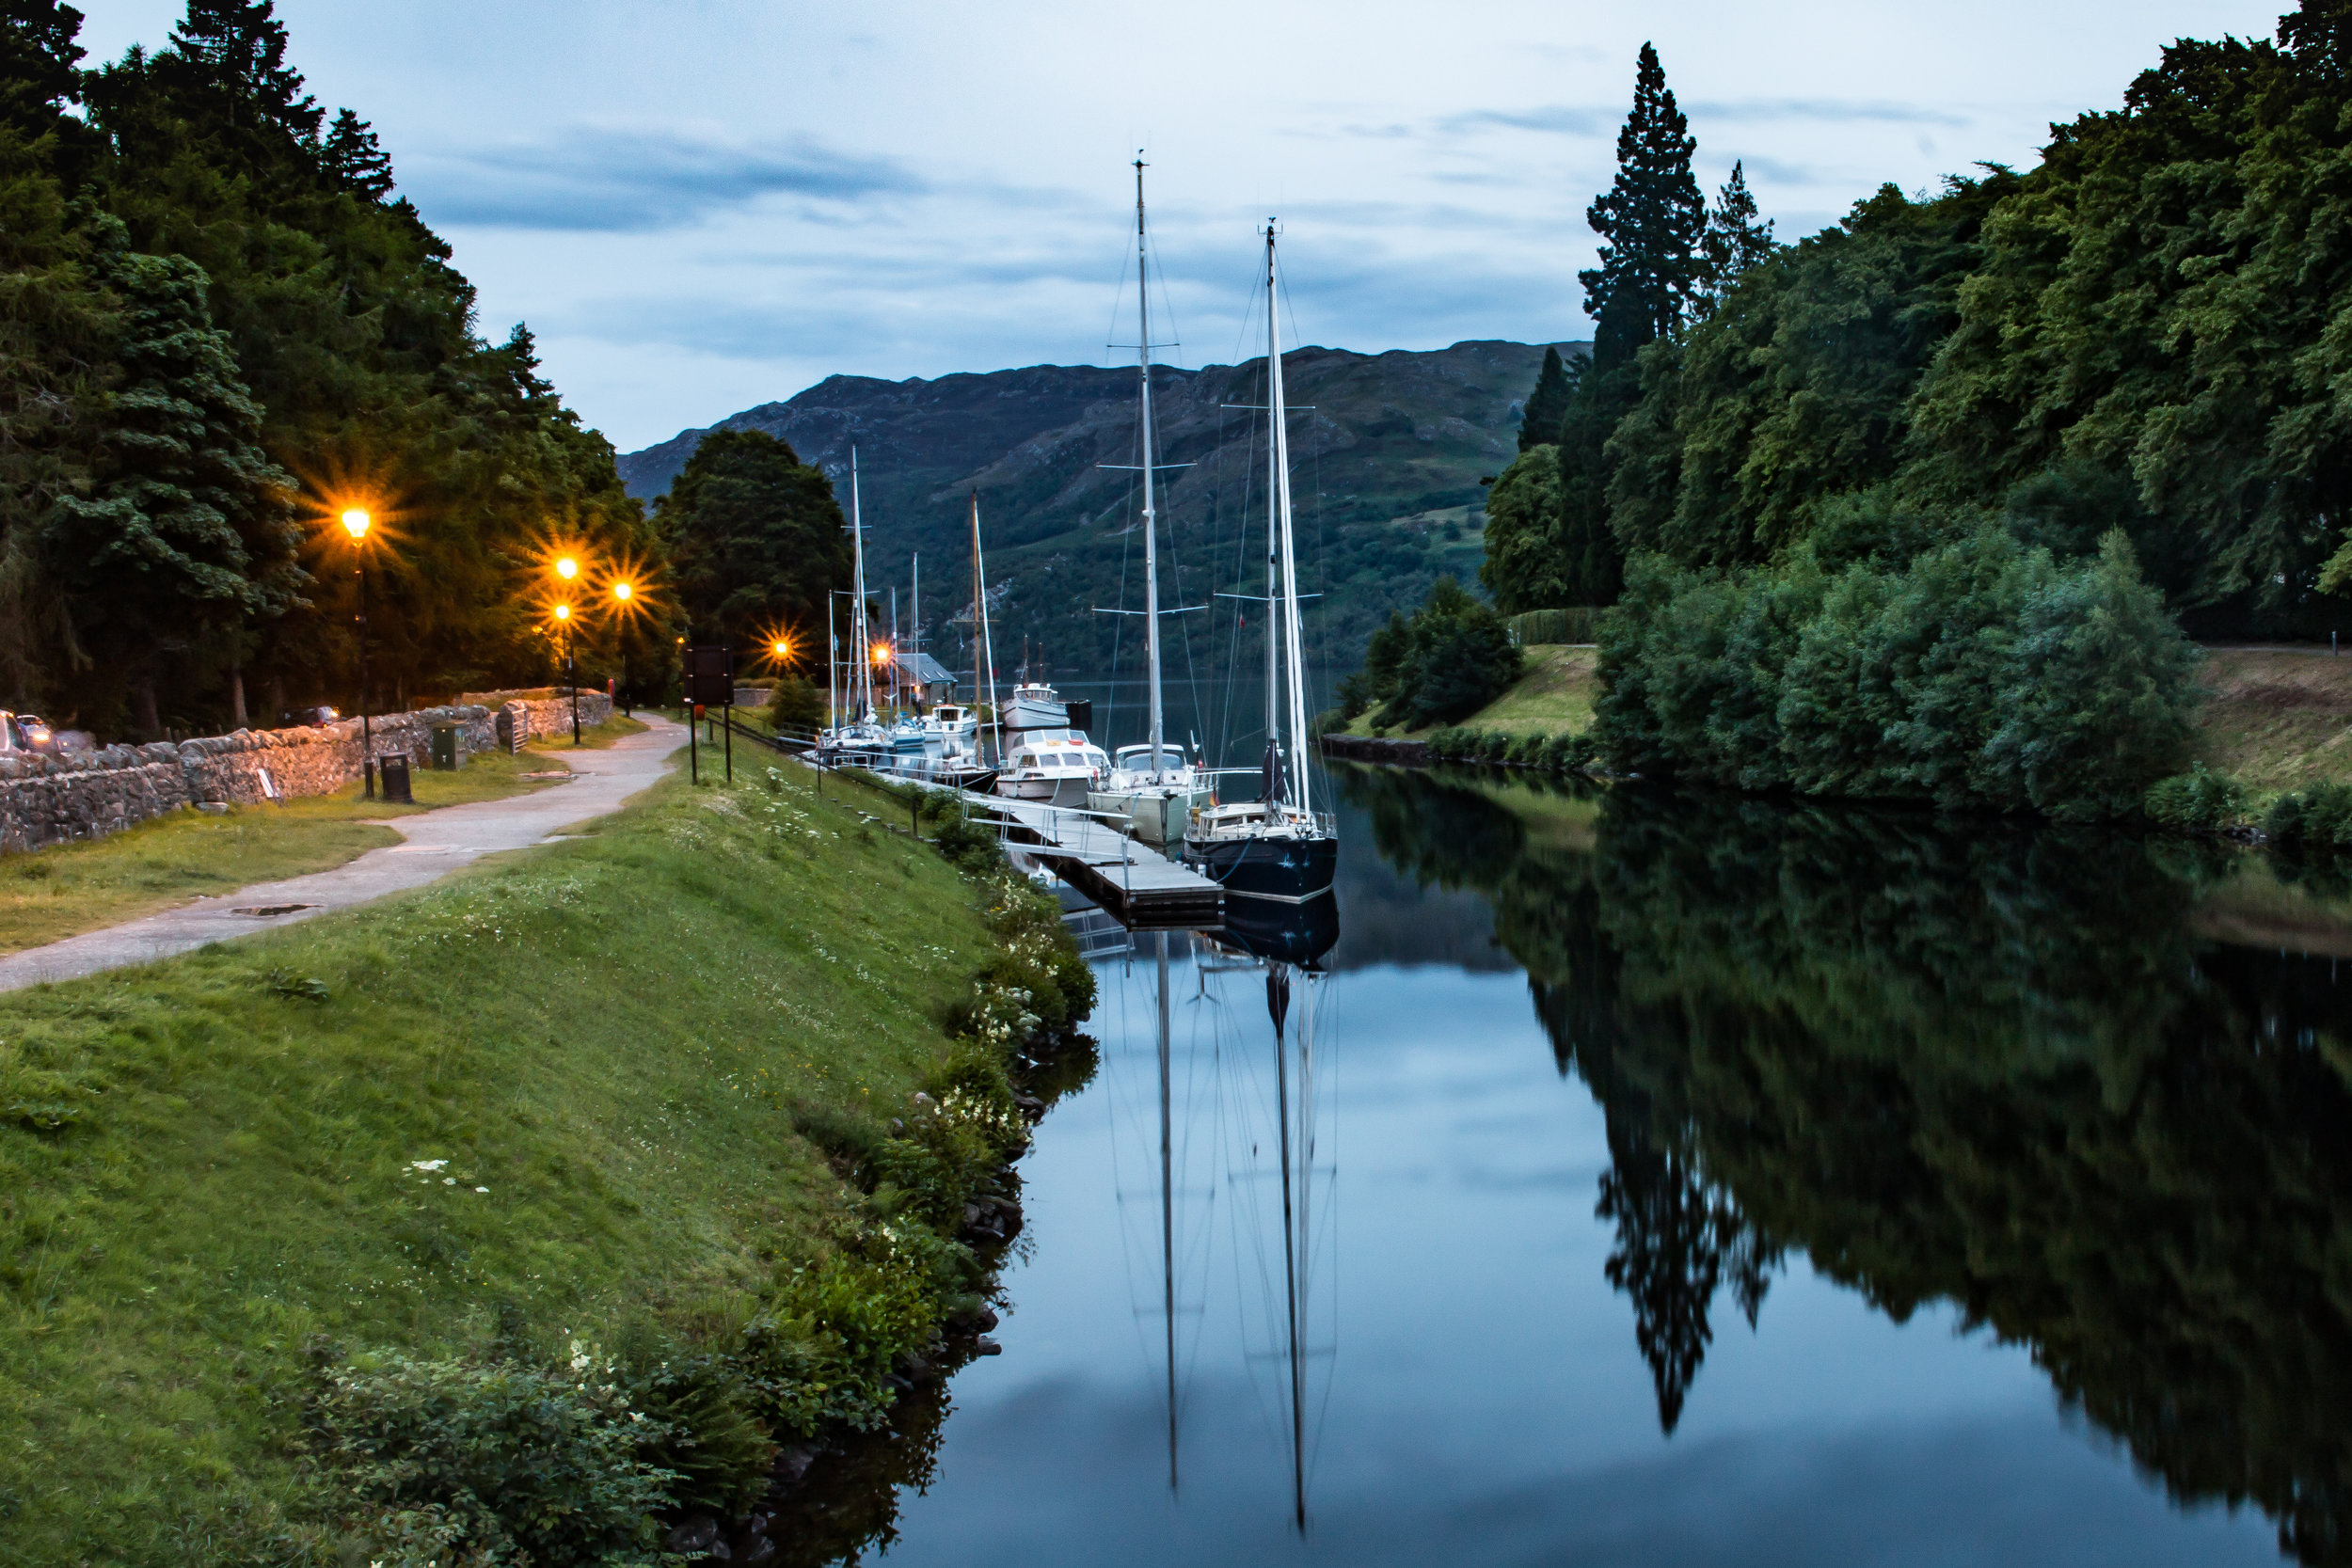 The lower Caledonian canal at Fort Augustus. In the background is the eastern end of Loch Ness. Fort Augustus is approx. 15 minutes drive from Laggan Locks.